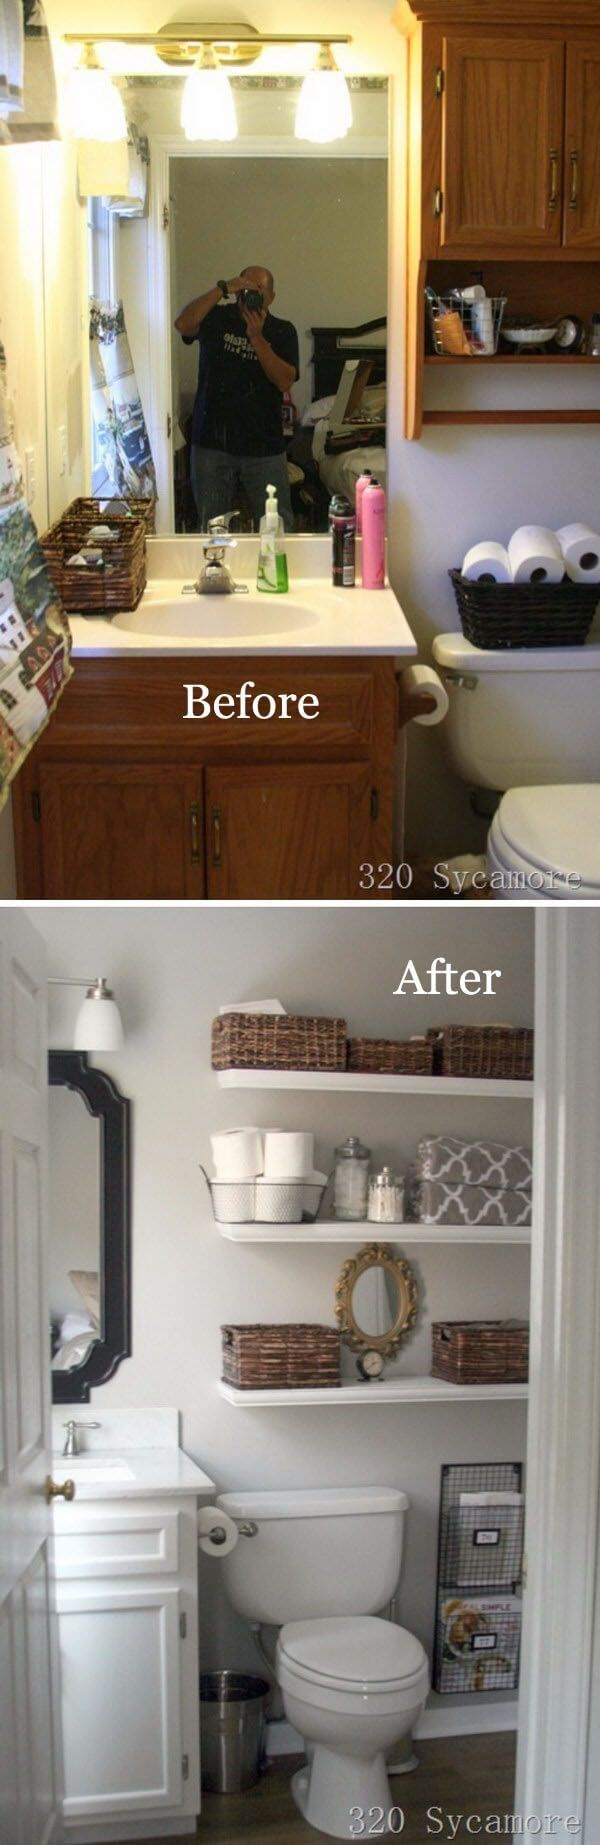 Bathroom shelf decorations - 25 Brilliant Diy Bathroom Shelf Ideas Sure To Redefine Savvy Storage